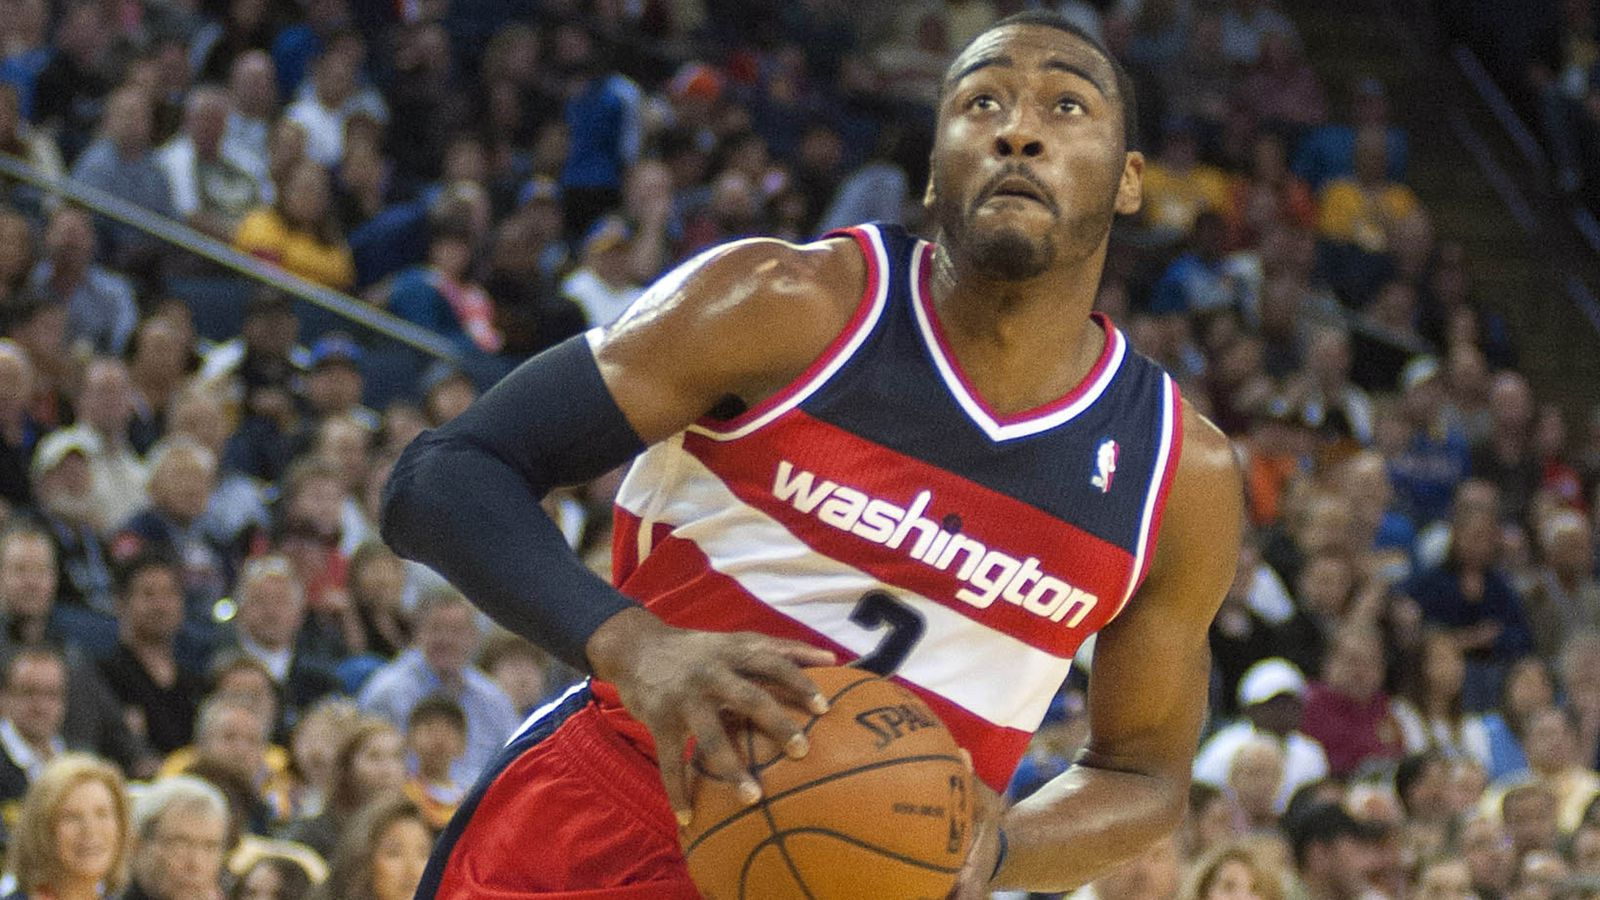 John Wall. Wizards agree to 5-year maximum contract extension - Bullets Forever